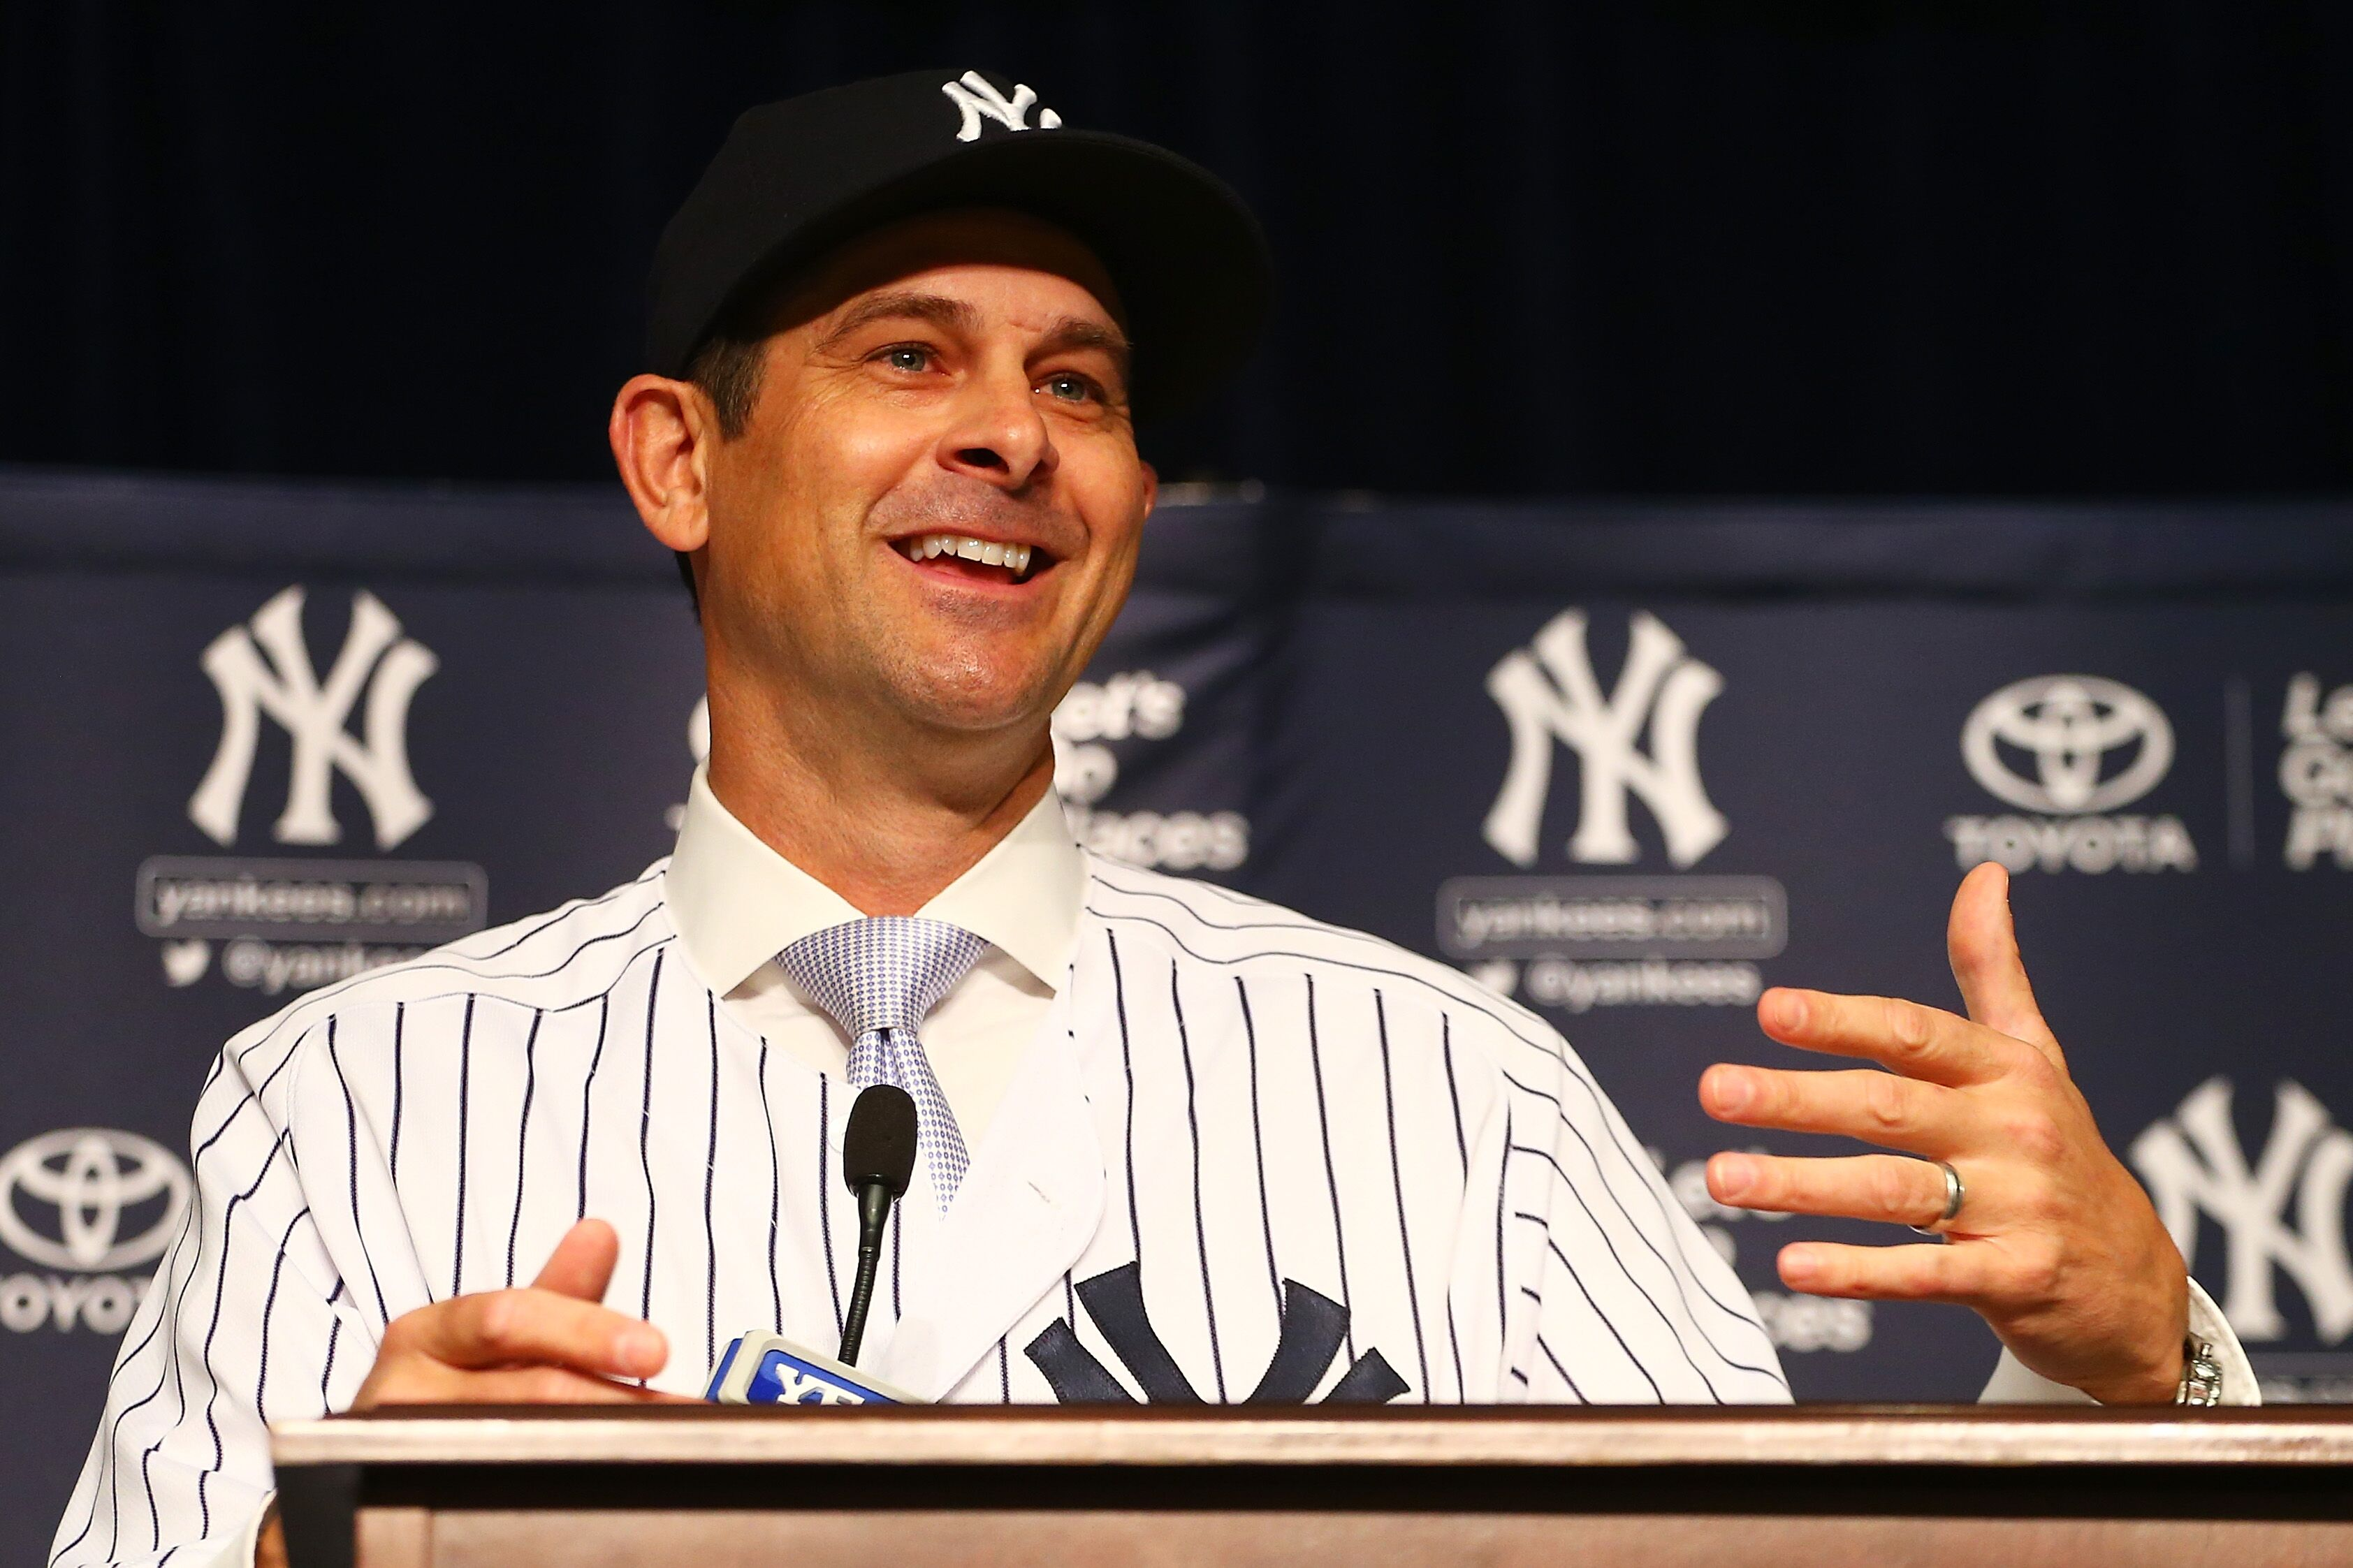 887095172-new-york-yankees-introduce-aaron-boone-as-manager.jpg